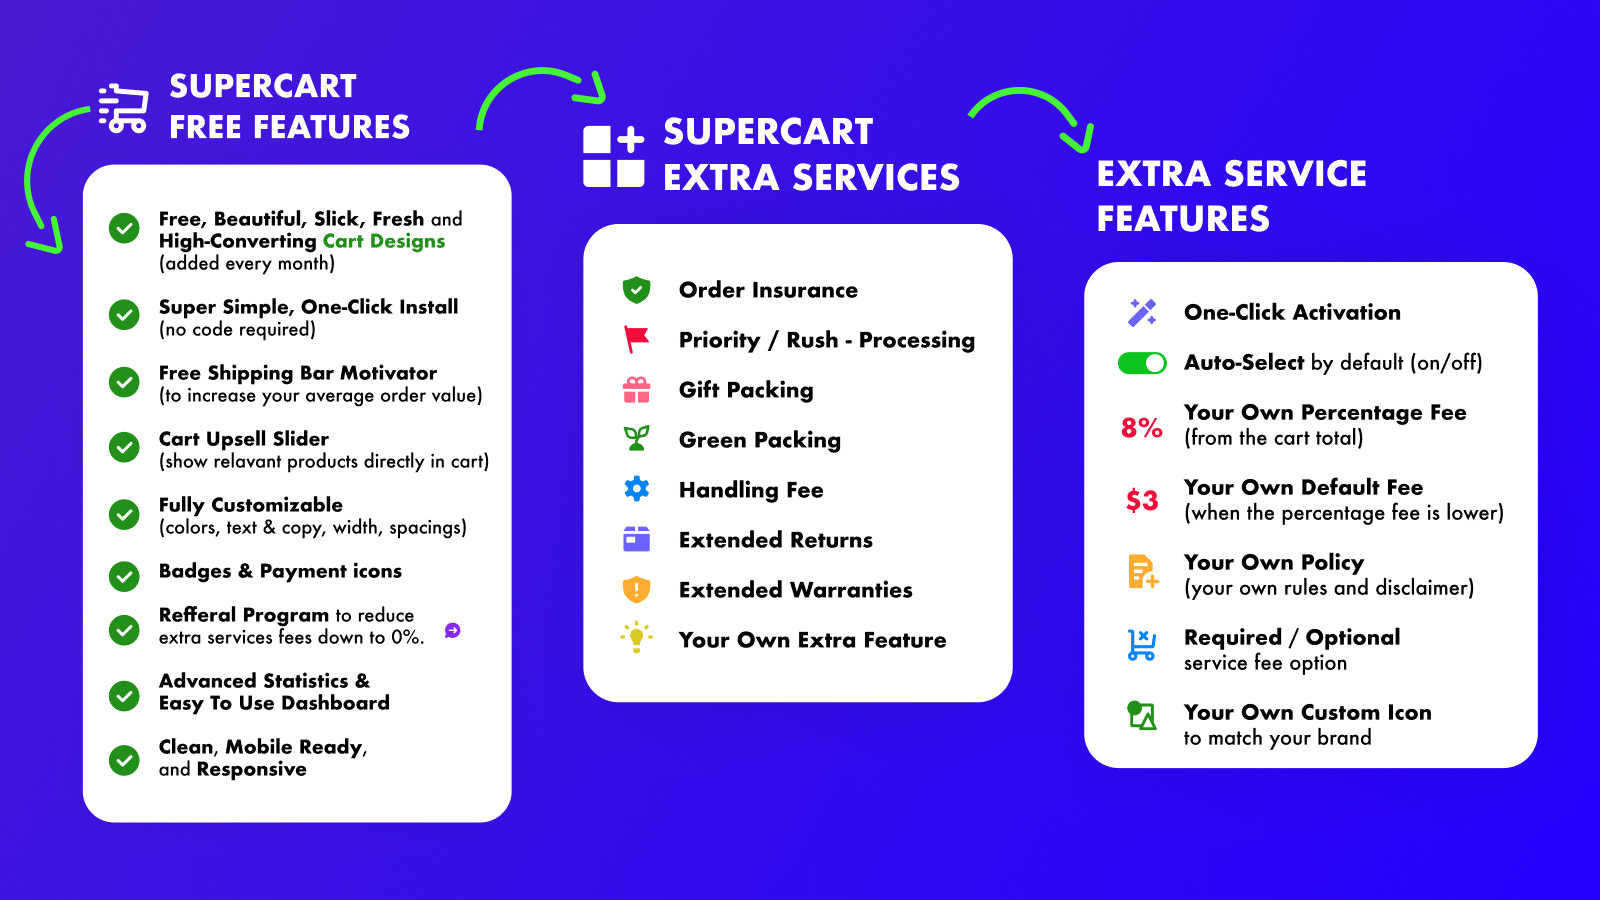 Supercart Free Features and Supercart Extra Services